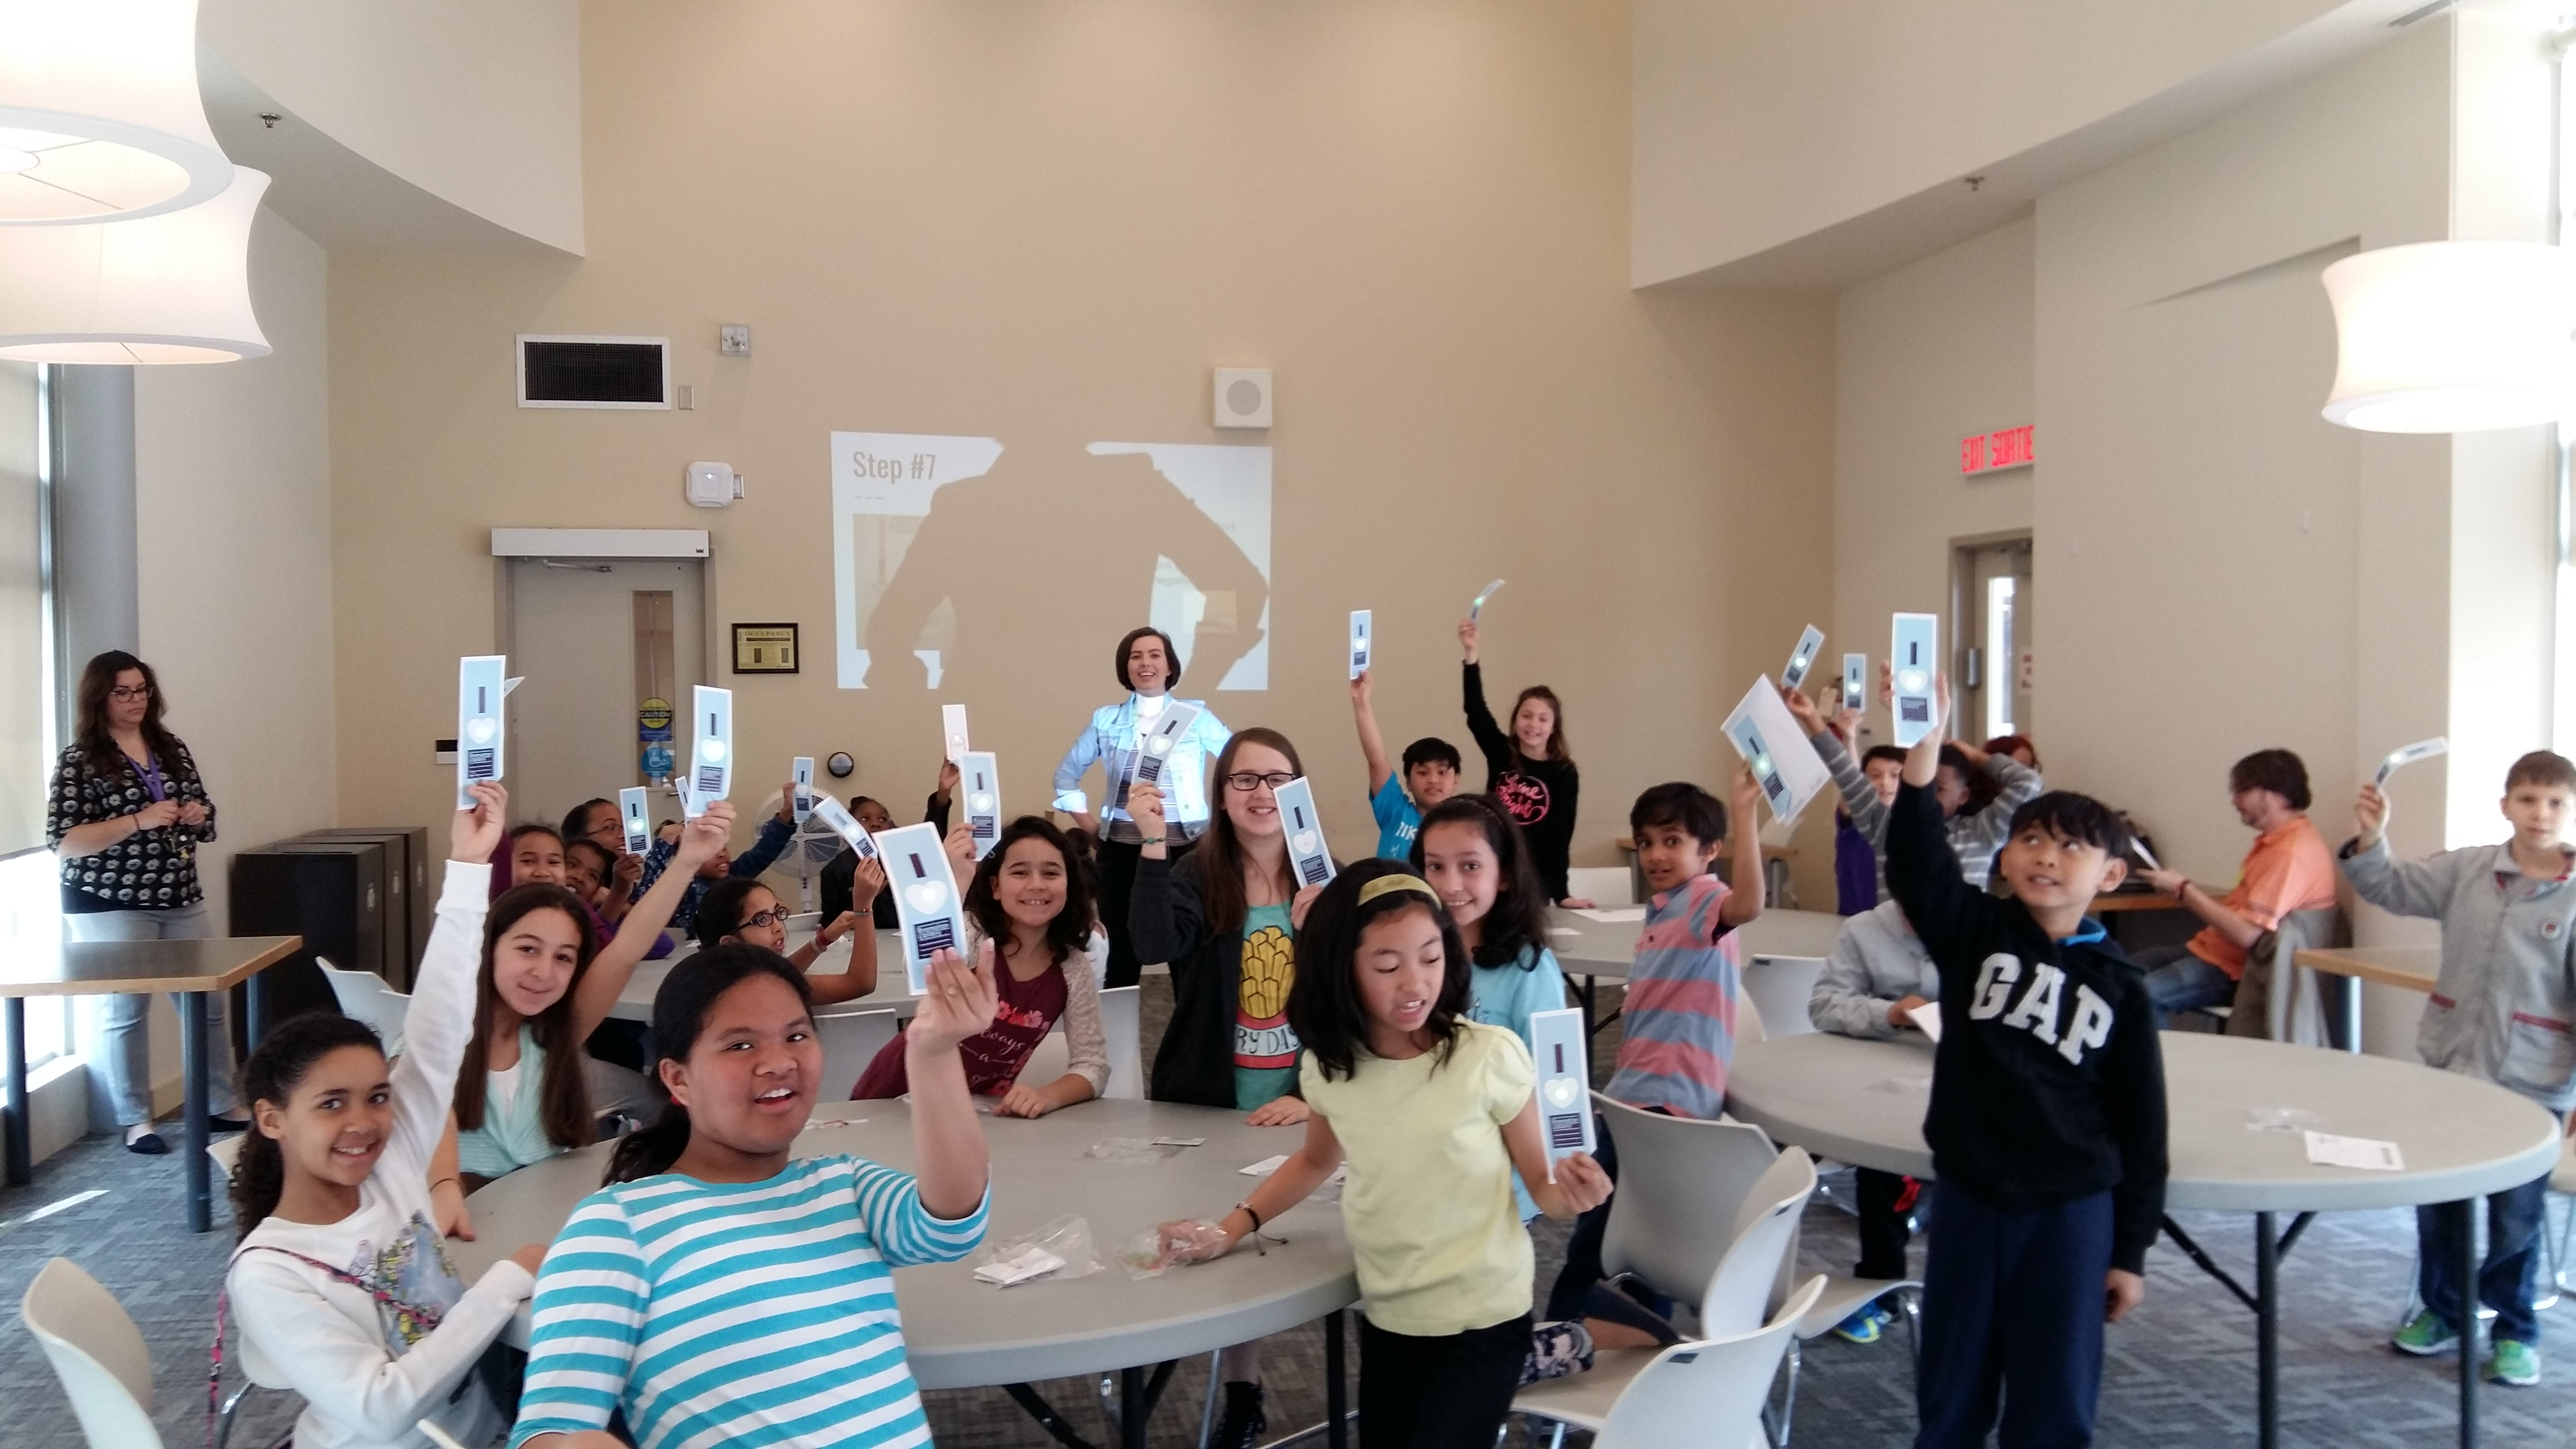 A room of students celebrating and showing off their Brampton Library bookmarks